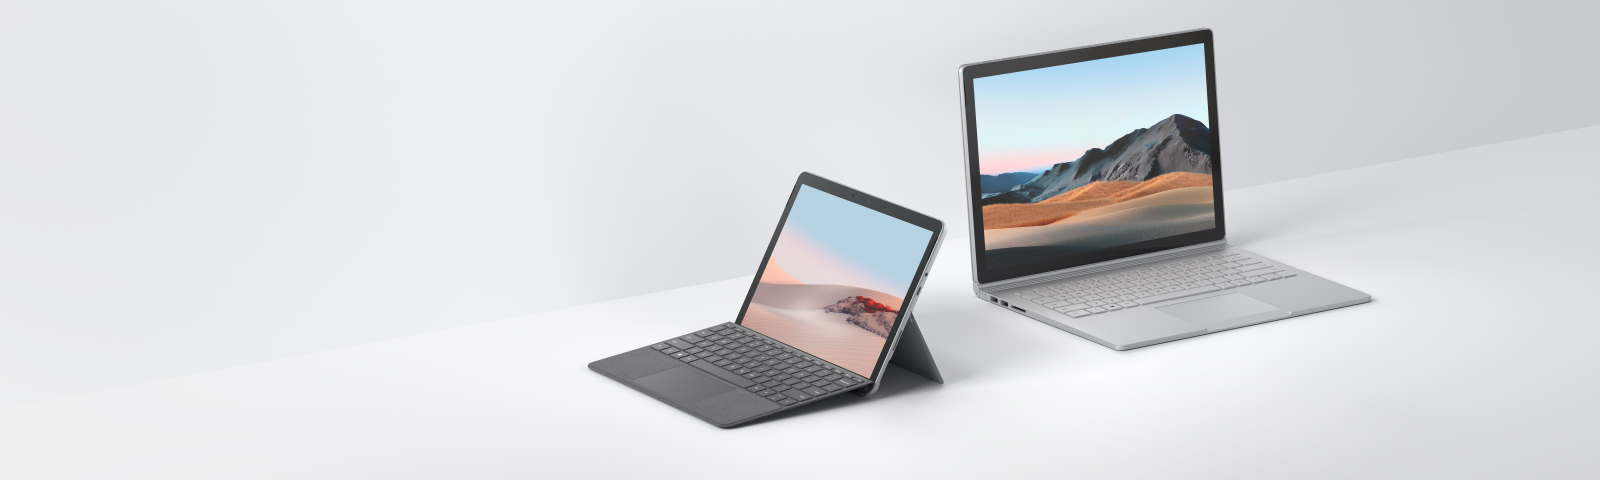 Device render